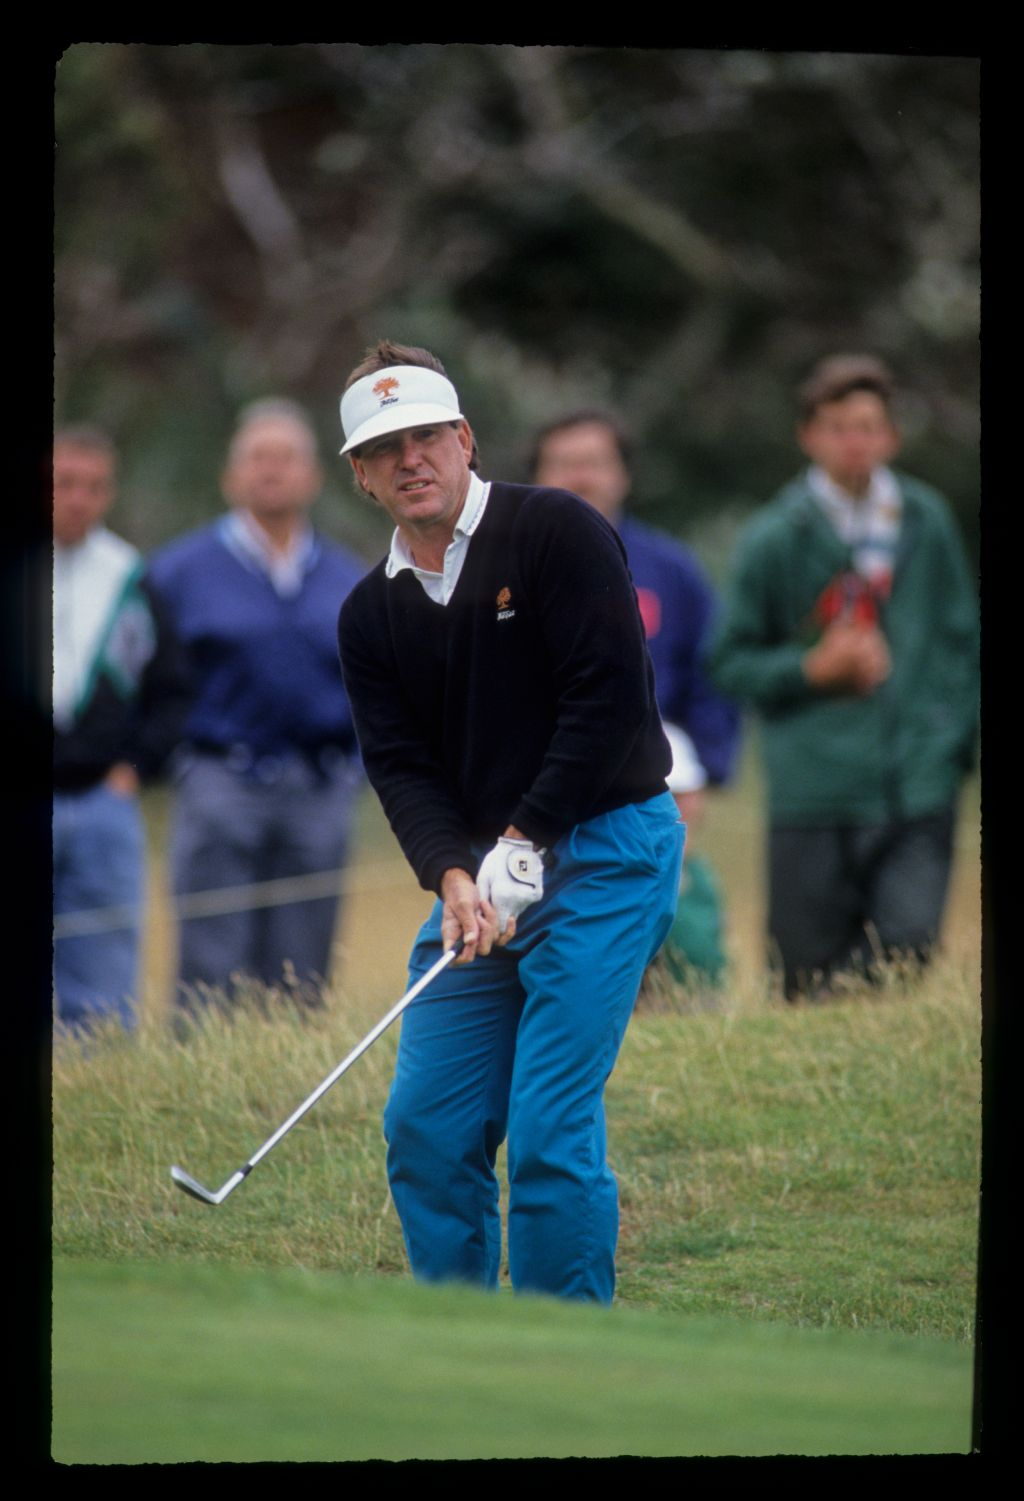 Gil Morgan chipping to the green during the 1991 Open Championship